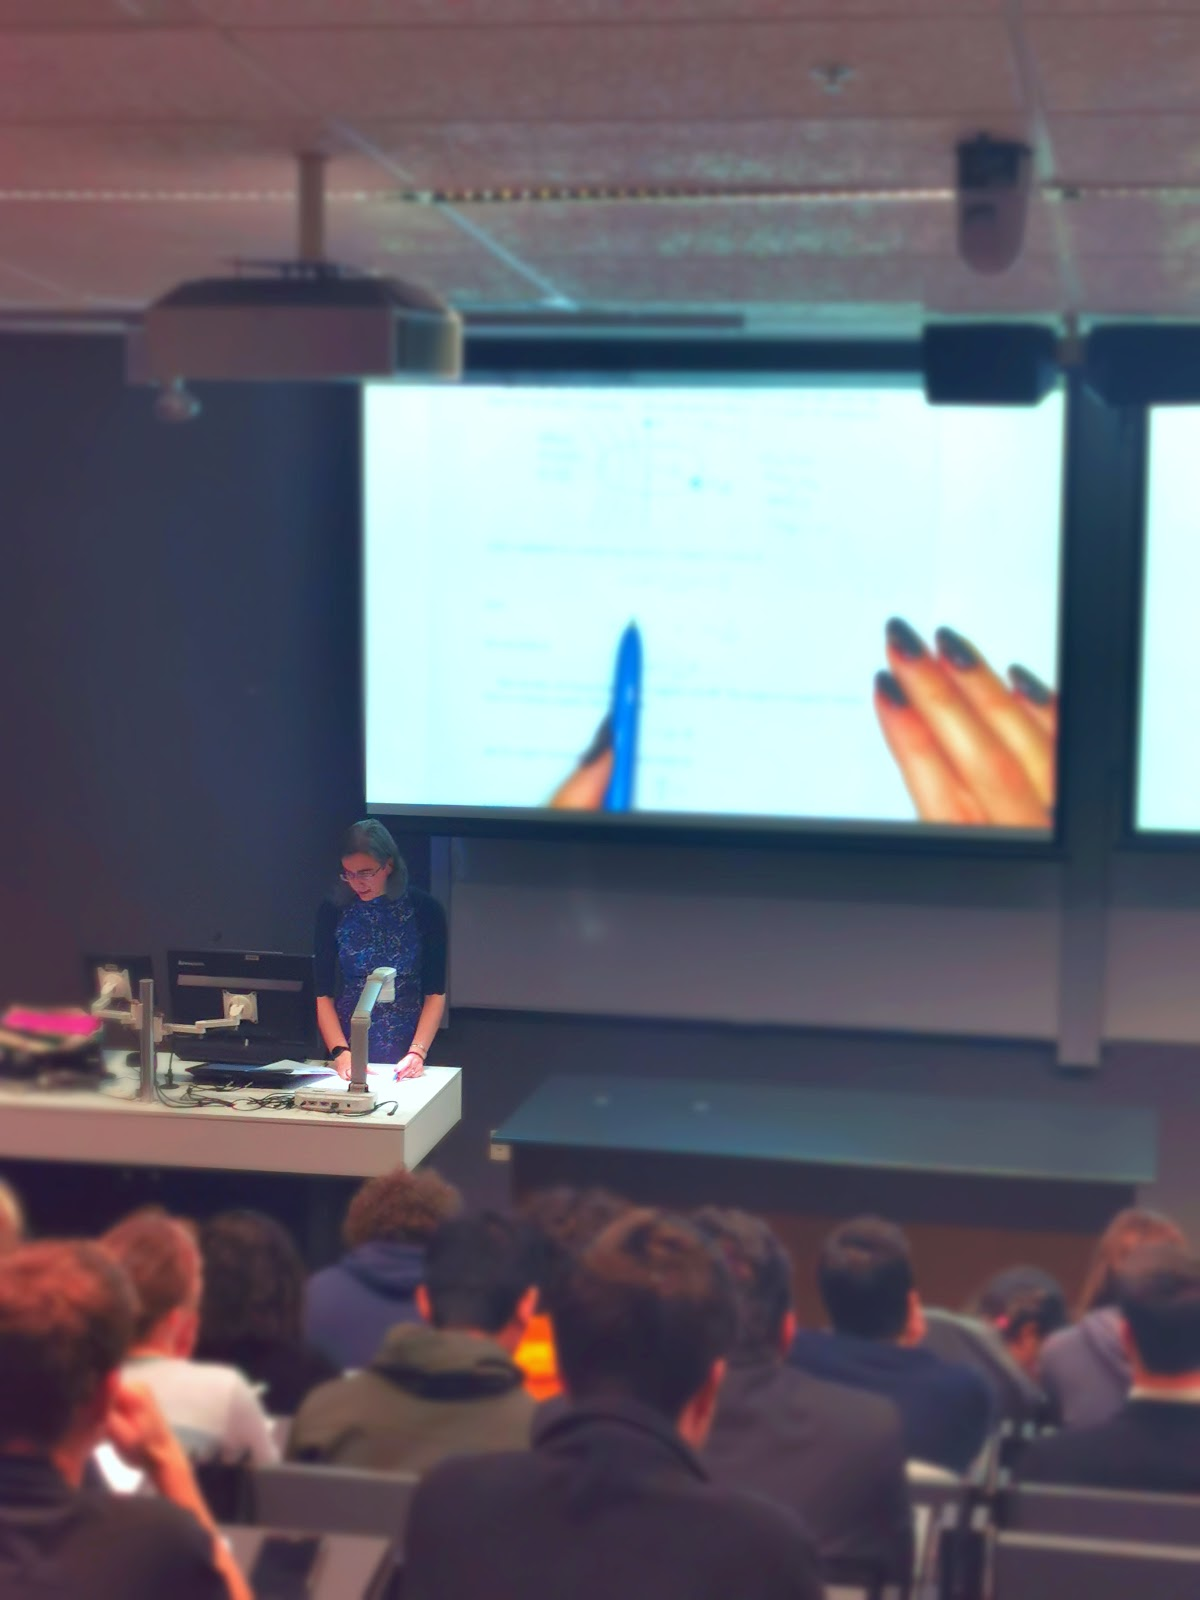 JJ lecturing students on quantum mechanics. Credit: Heloise Stevance